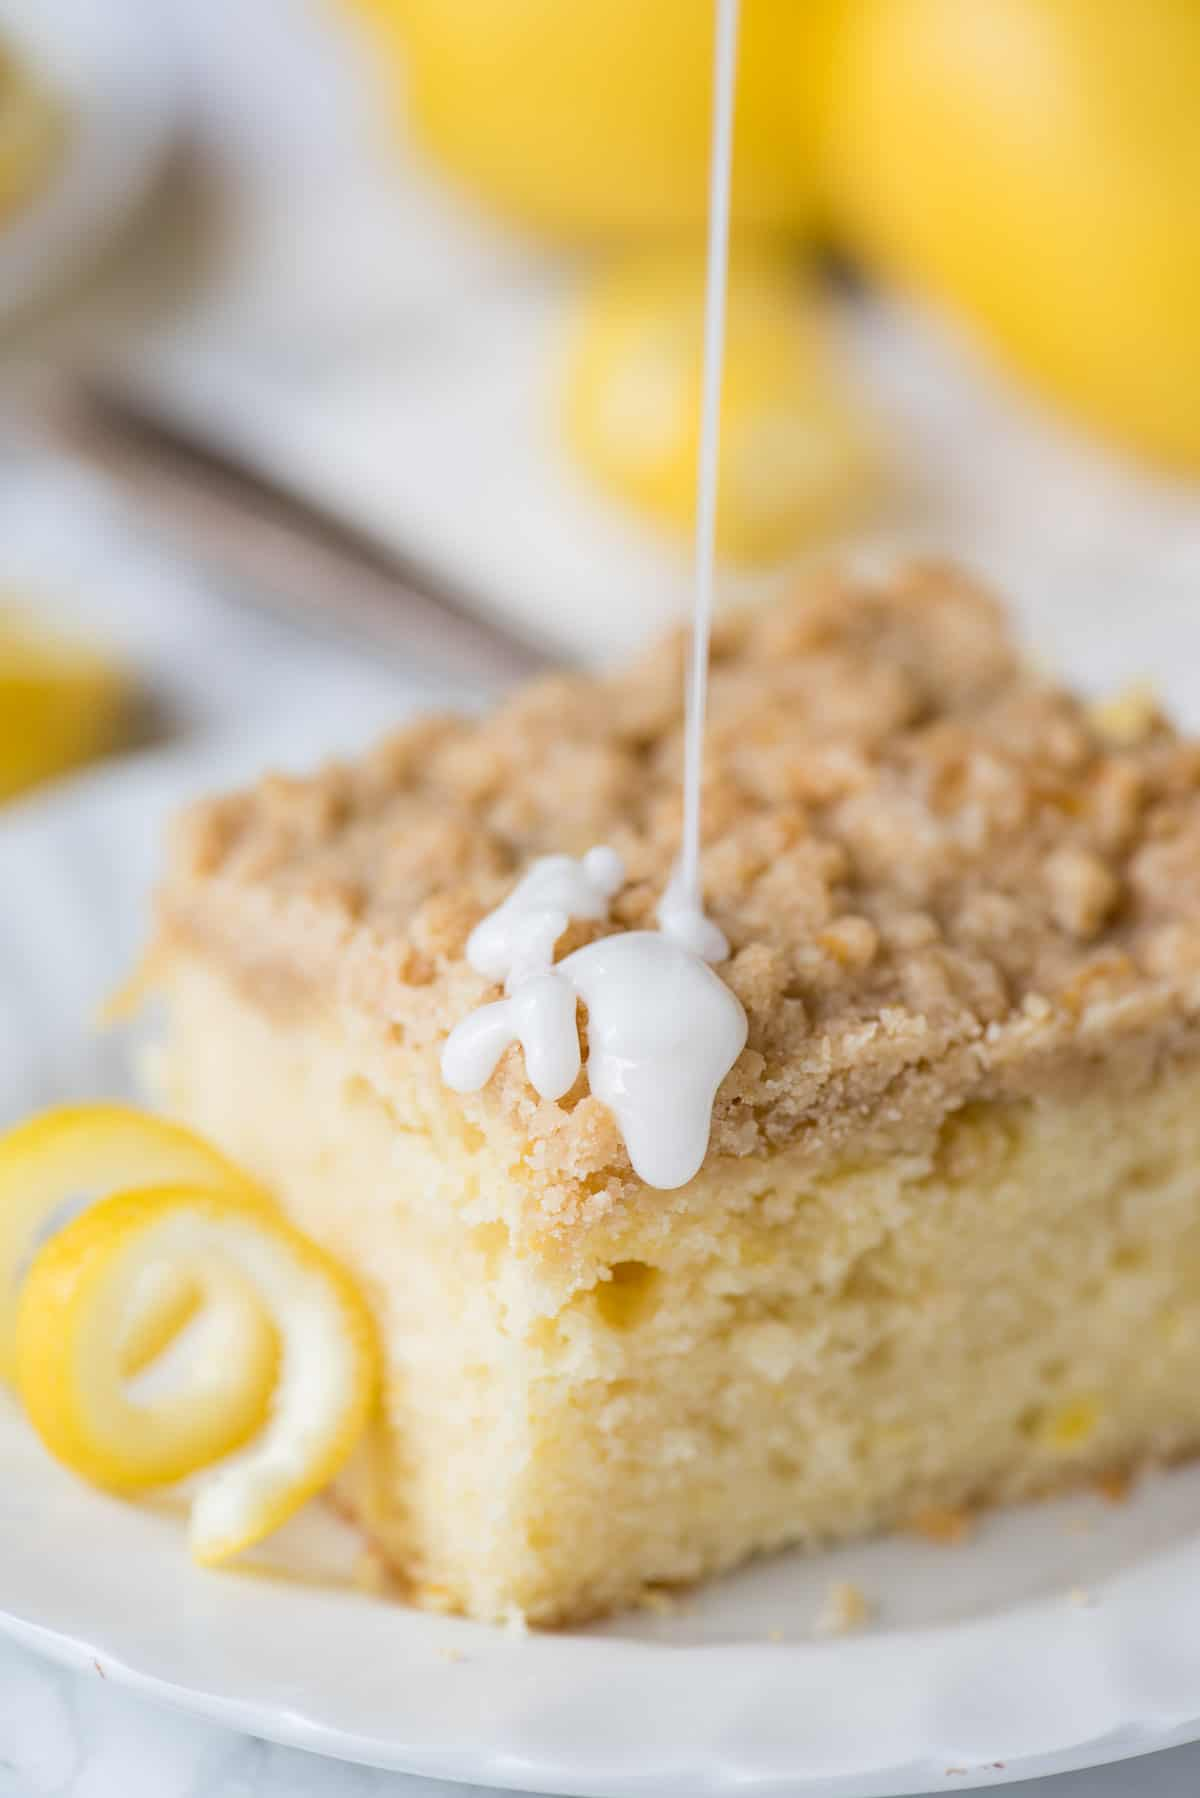 Lemon crumb cake on white plate with glaze being drizzled on top